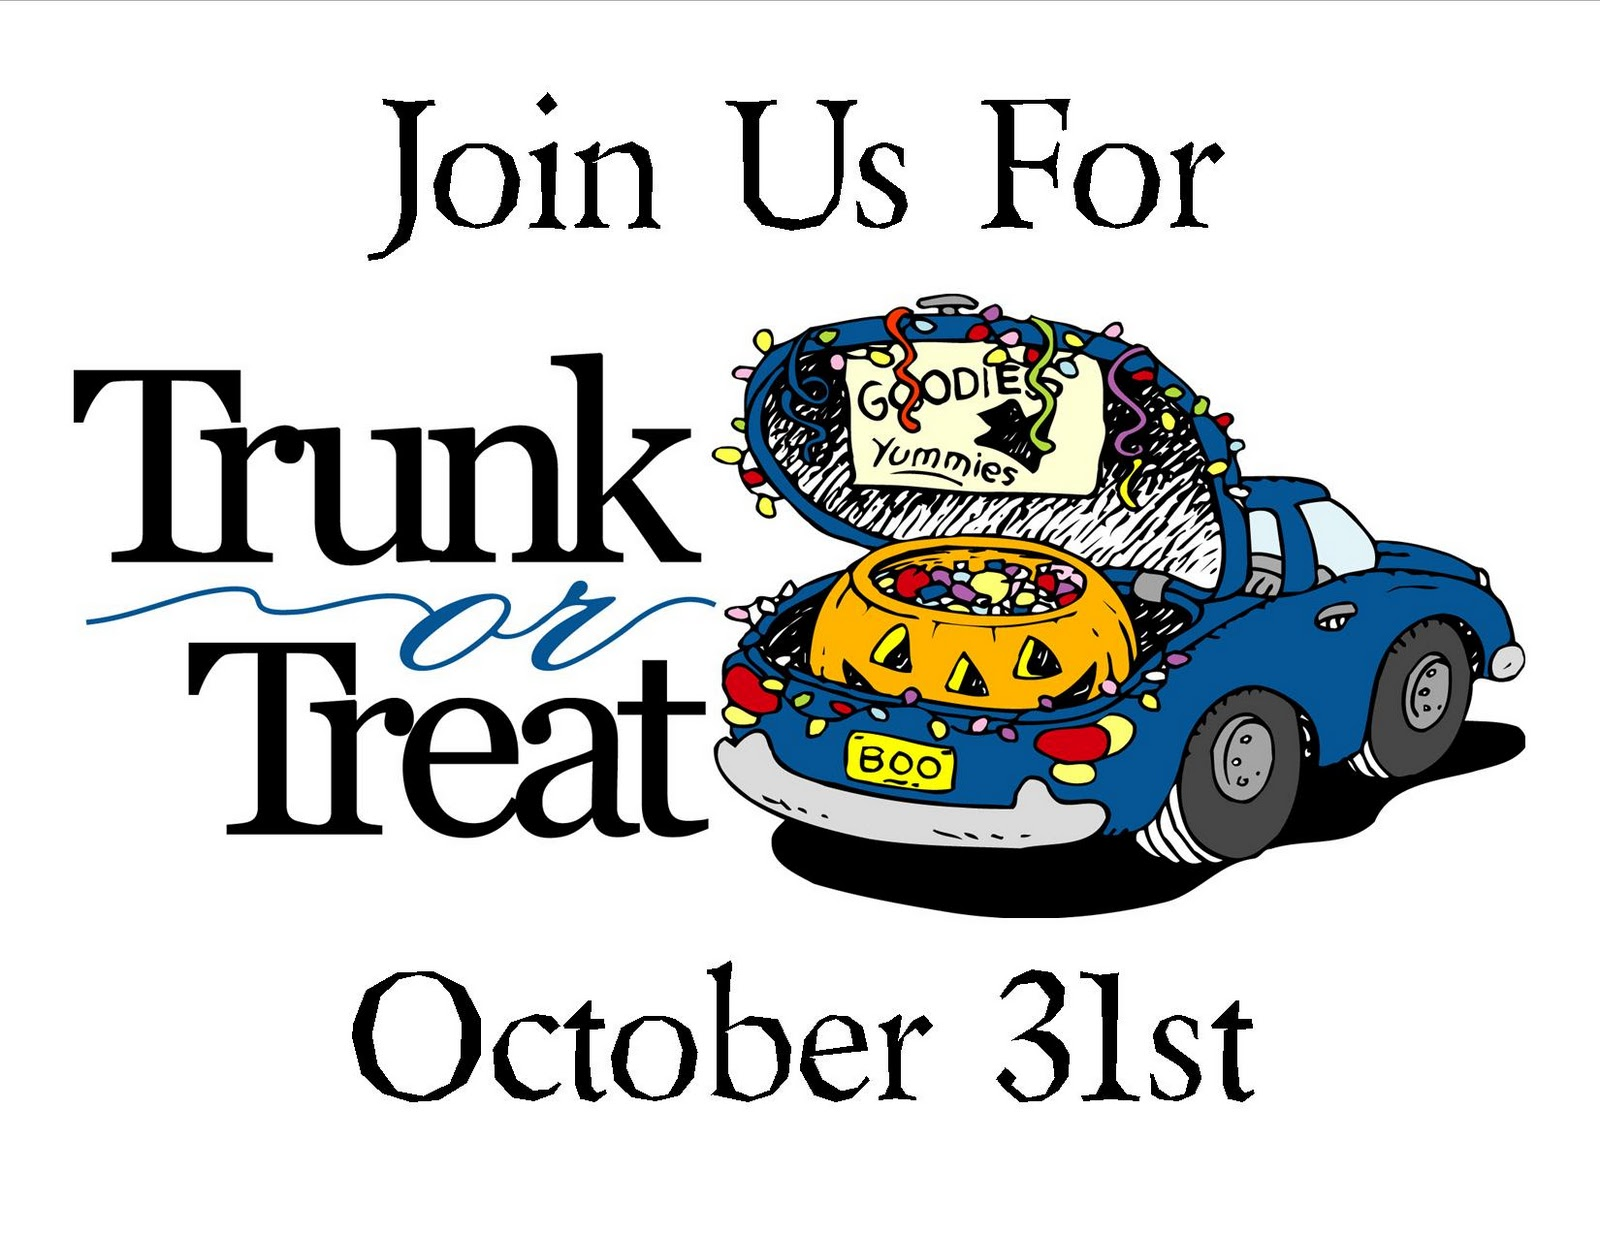 trunk or treat the library macedon public library connecting rh macedonpubliclibrary org trunk or treat clipart black and white trunk or treat clipart black and white